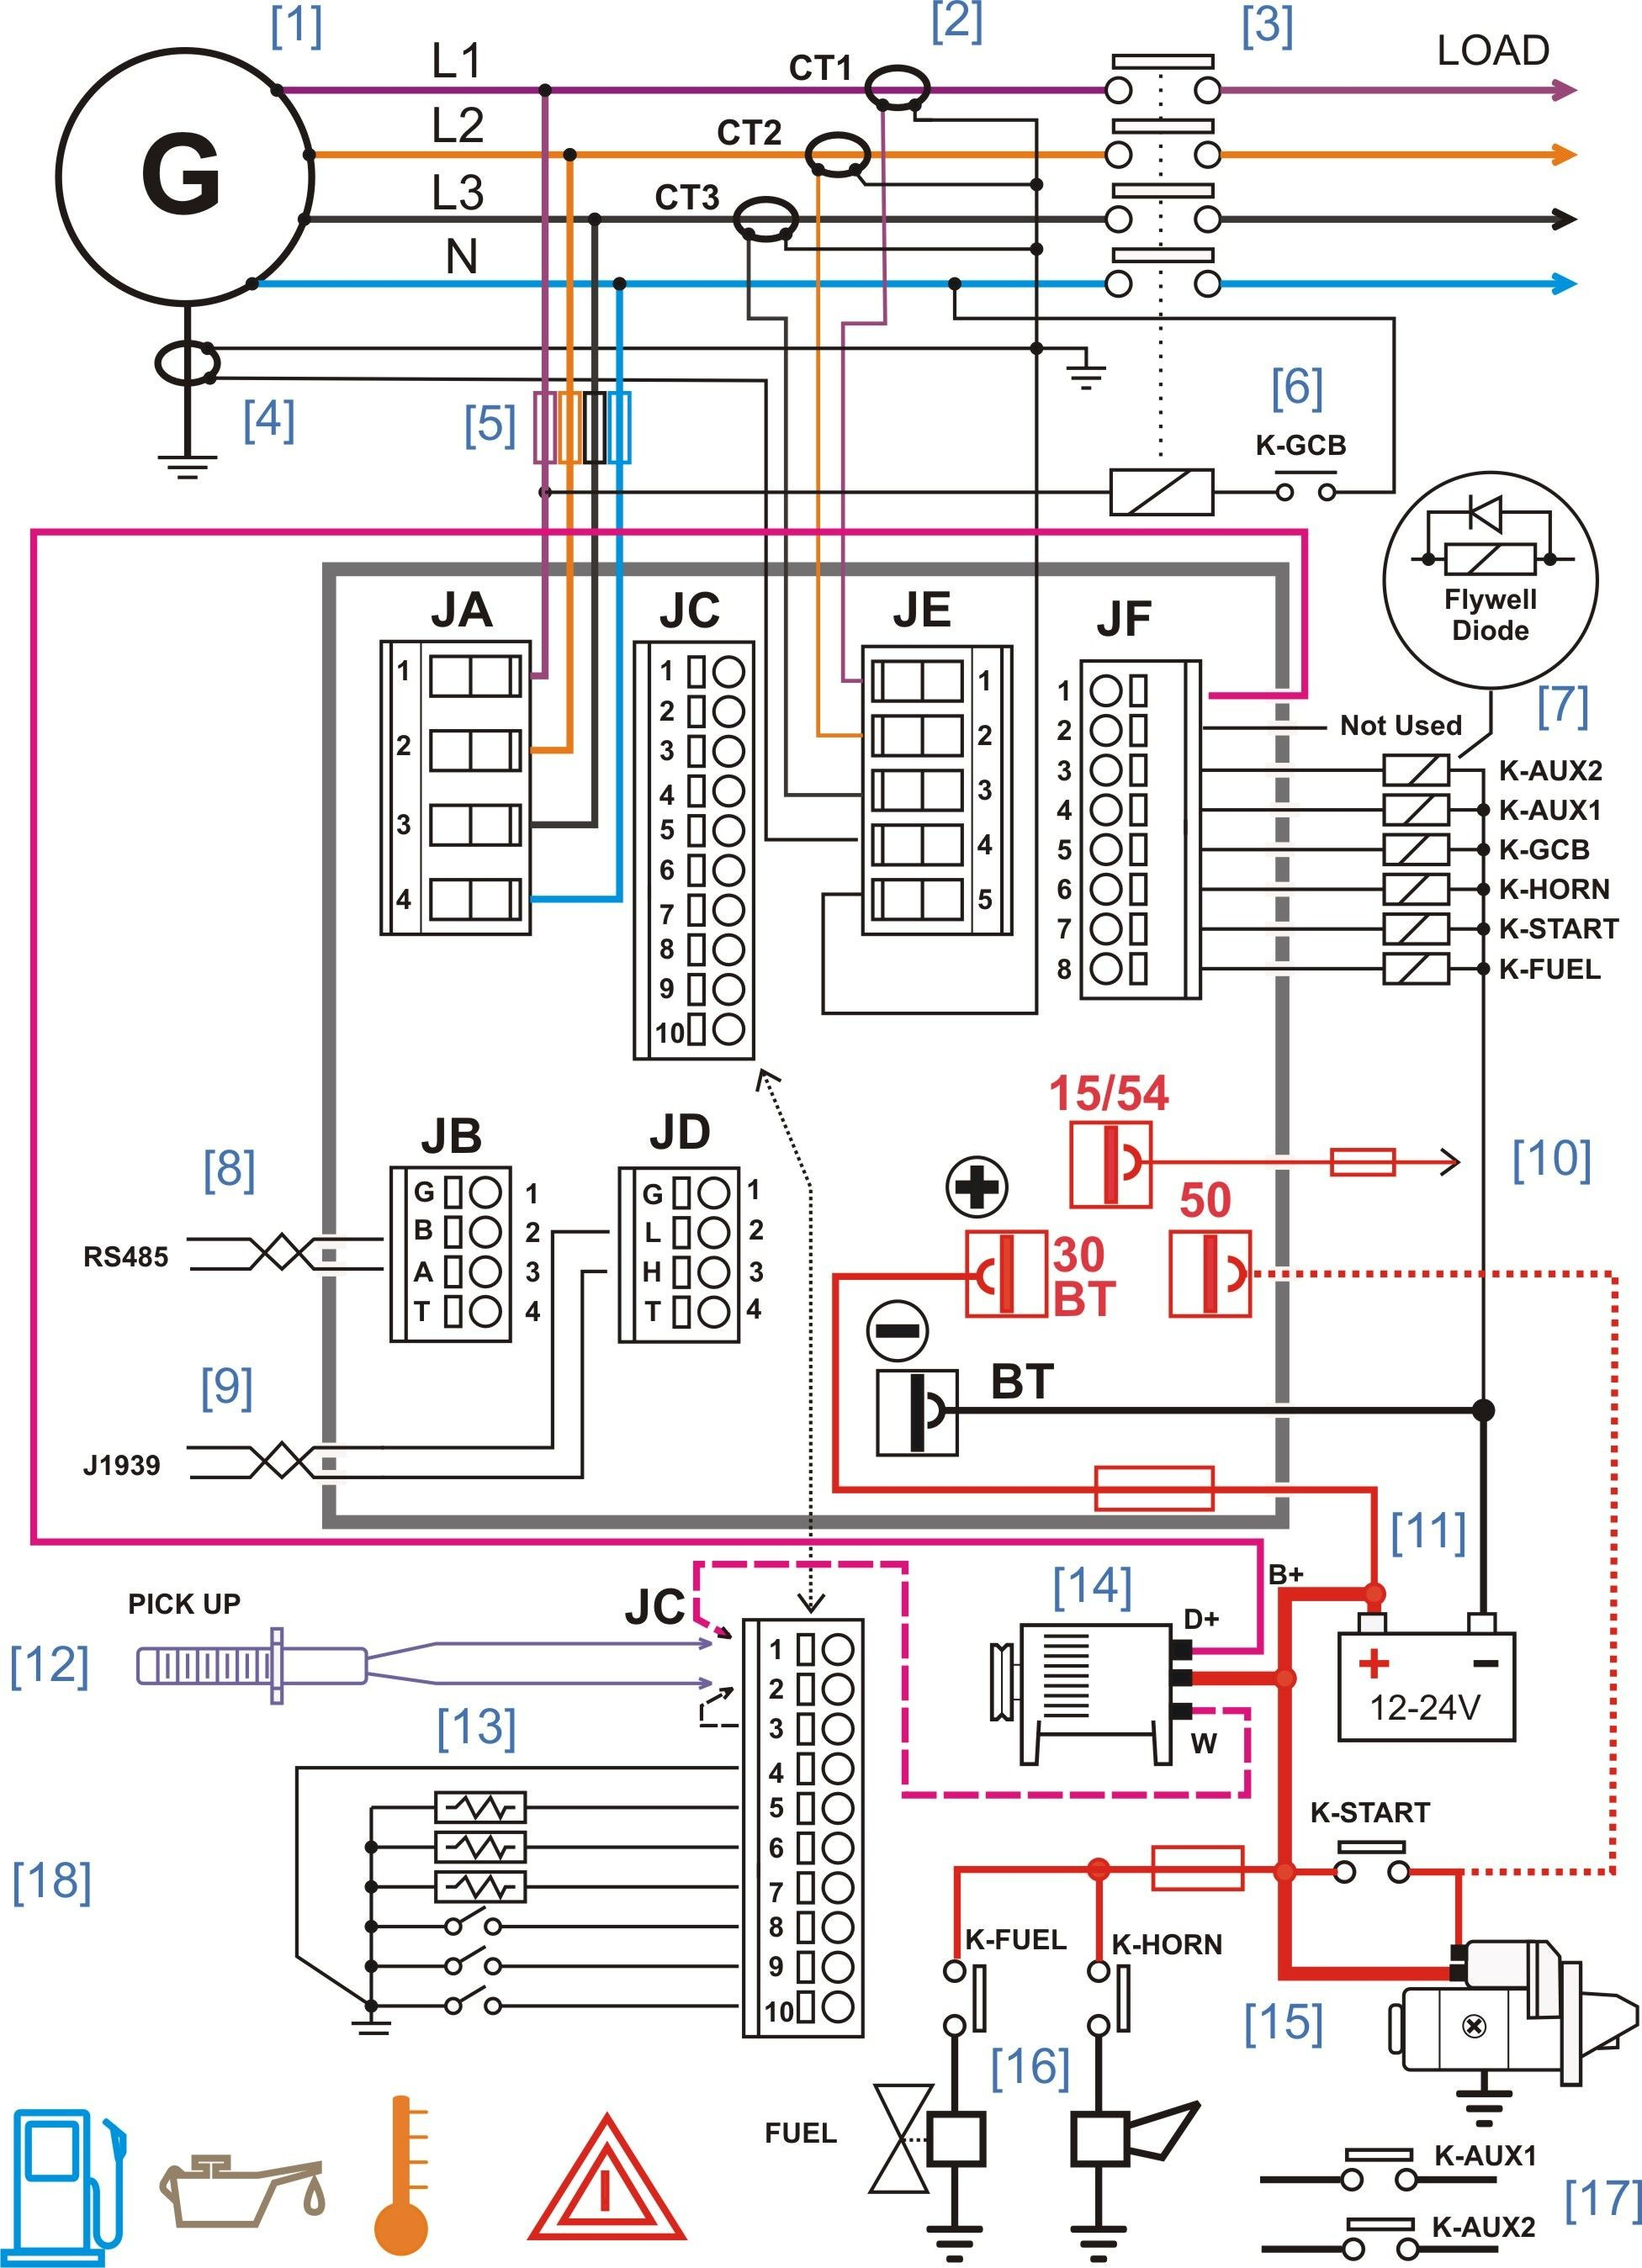 Reliance Transfer Switch Wiring Diagram - Data Wiring Diagram Today - Reliance Generator Transfer Switch Wiring Diagram